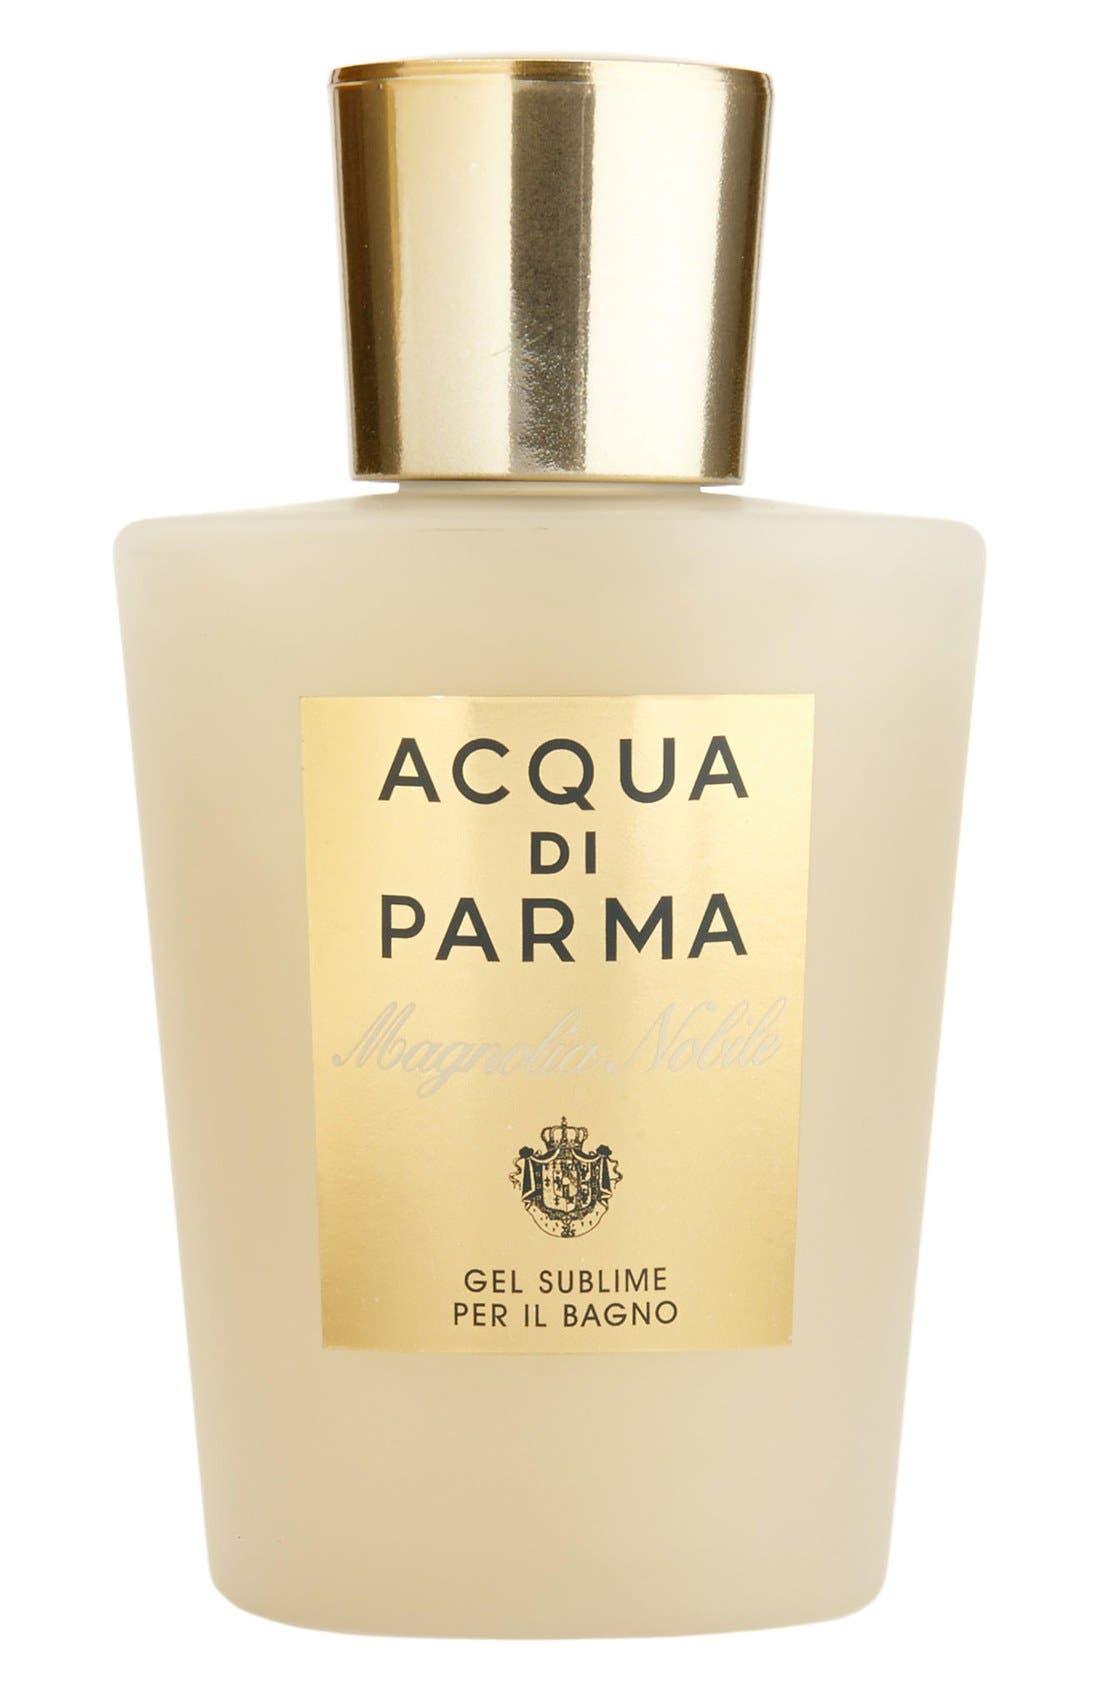 Acqua di Parma 'Magnolia Nobile' Bath & Shower Gel